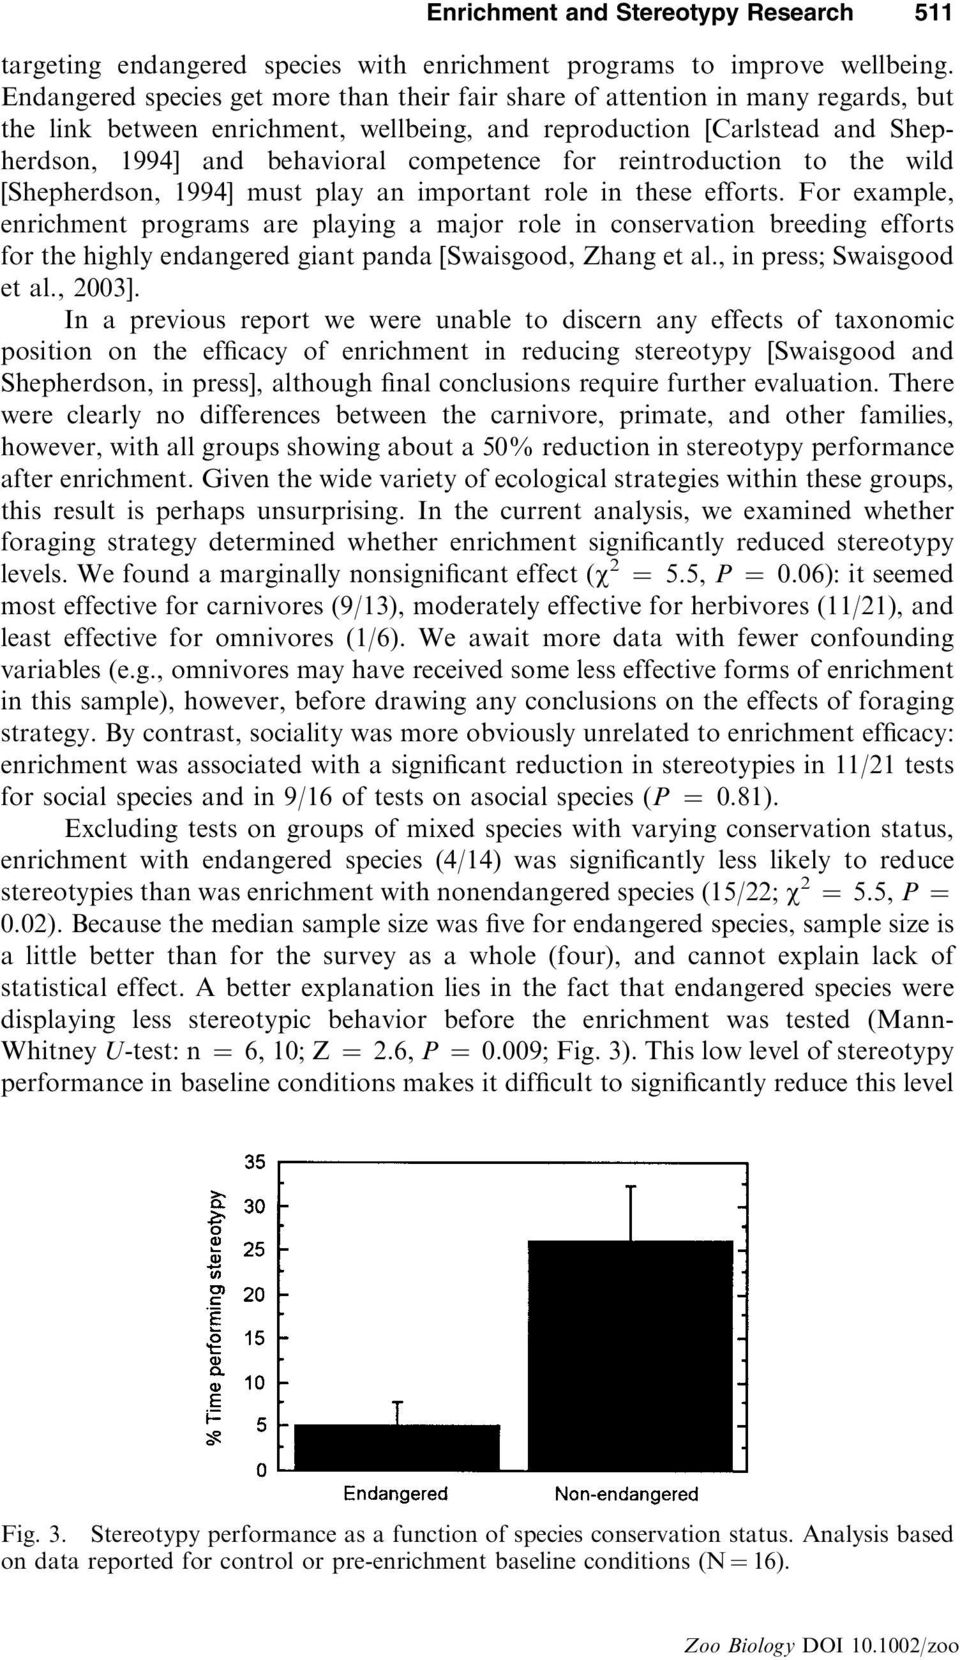 competence for reintroduction to the wild [Shepherdson, 1994] must play an important role in these efforts.